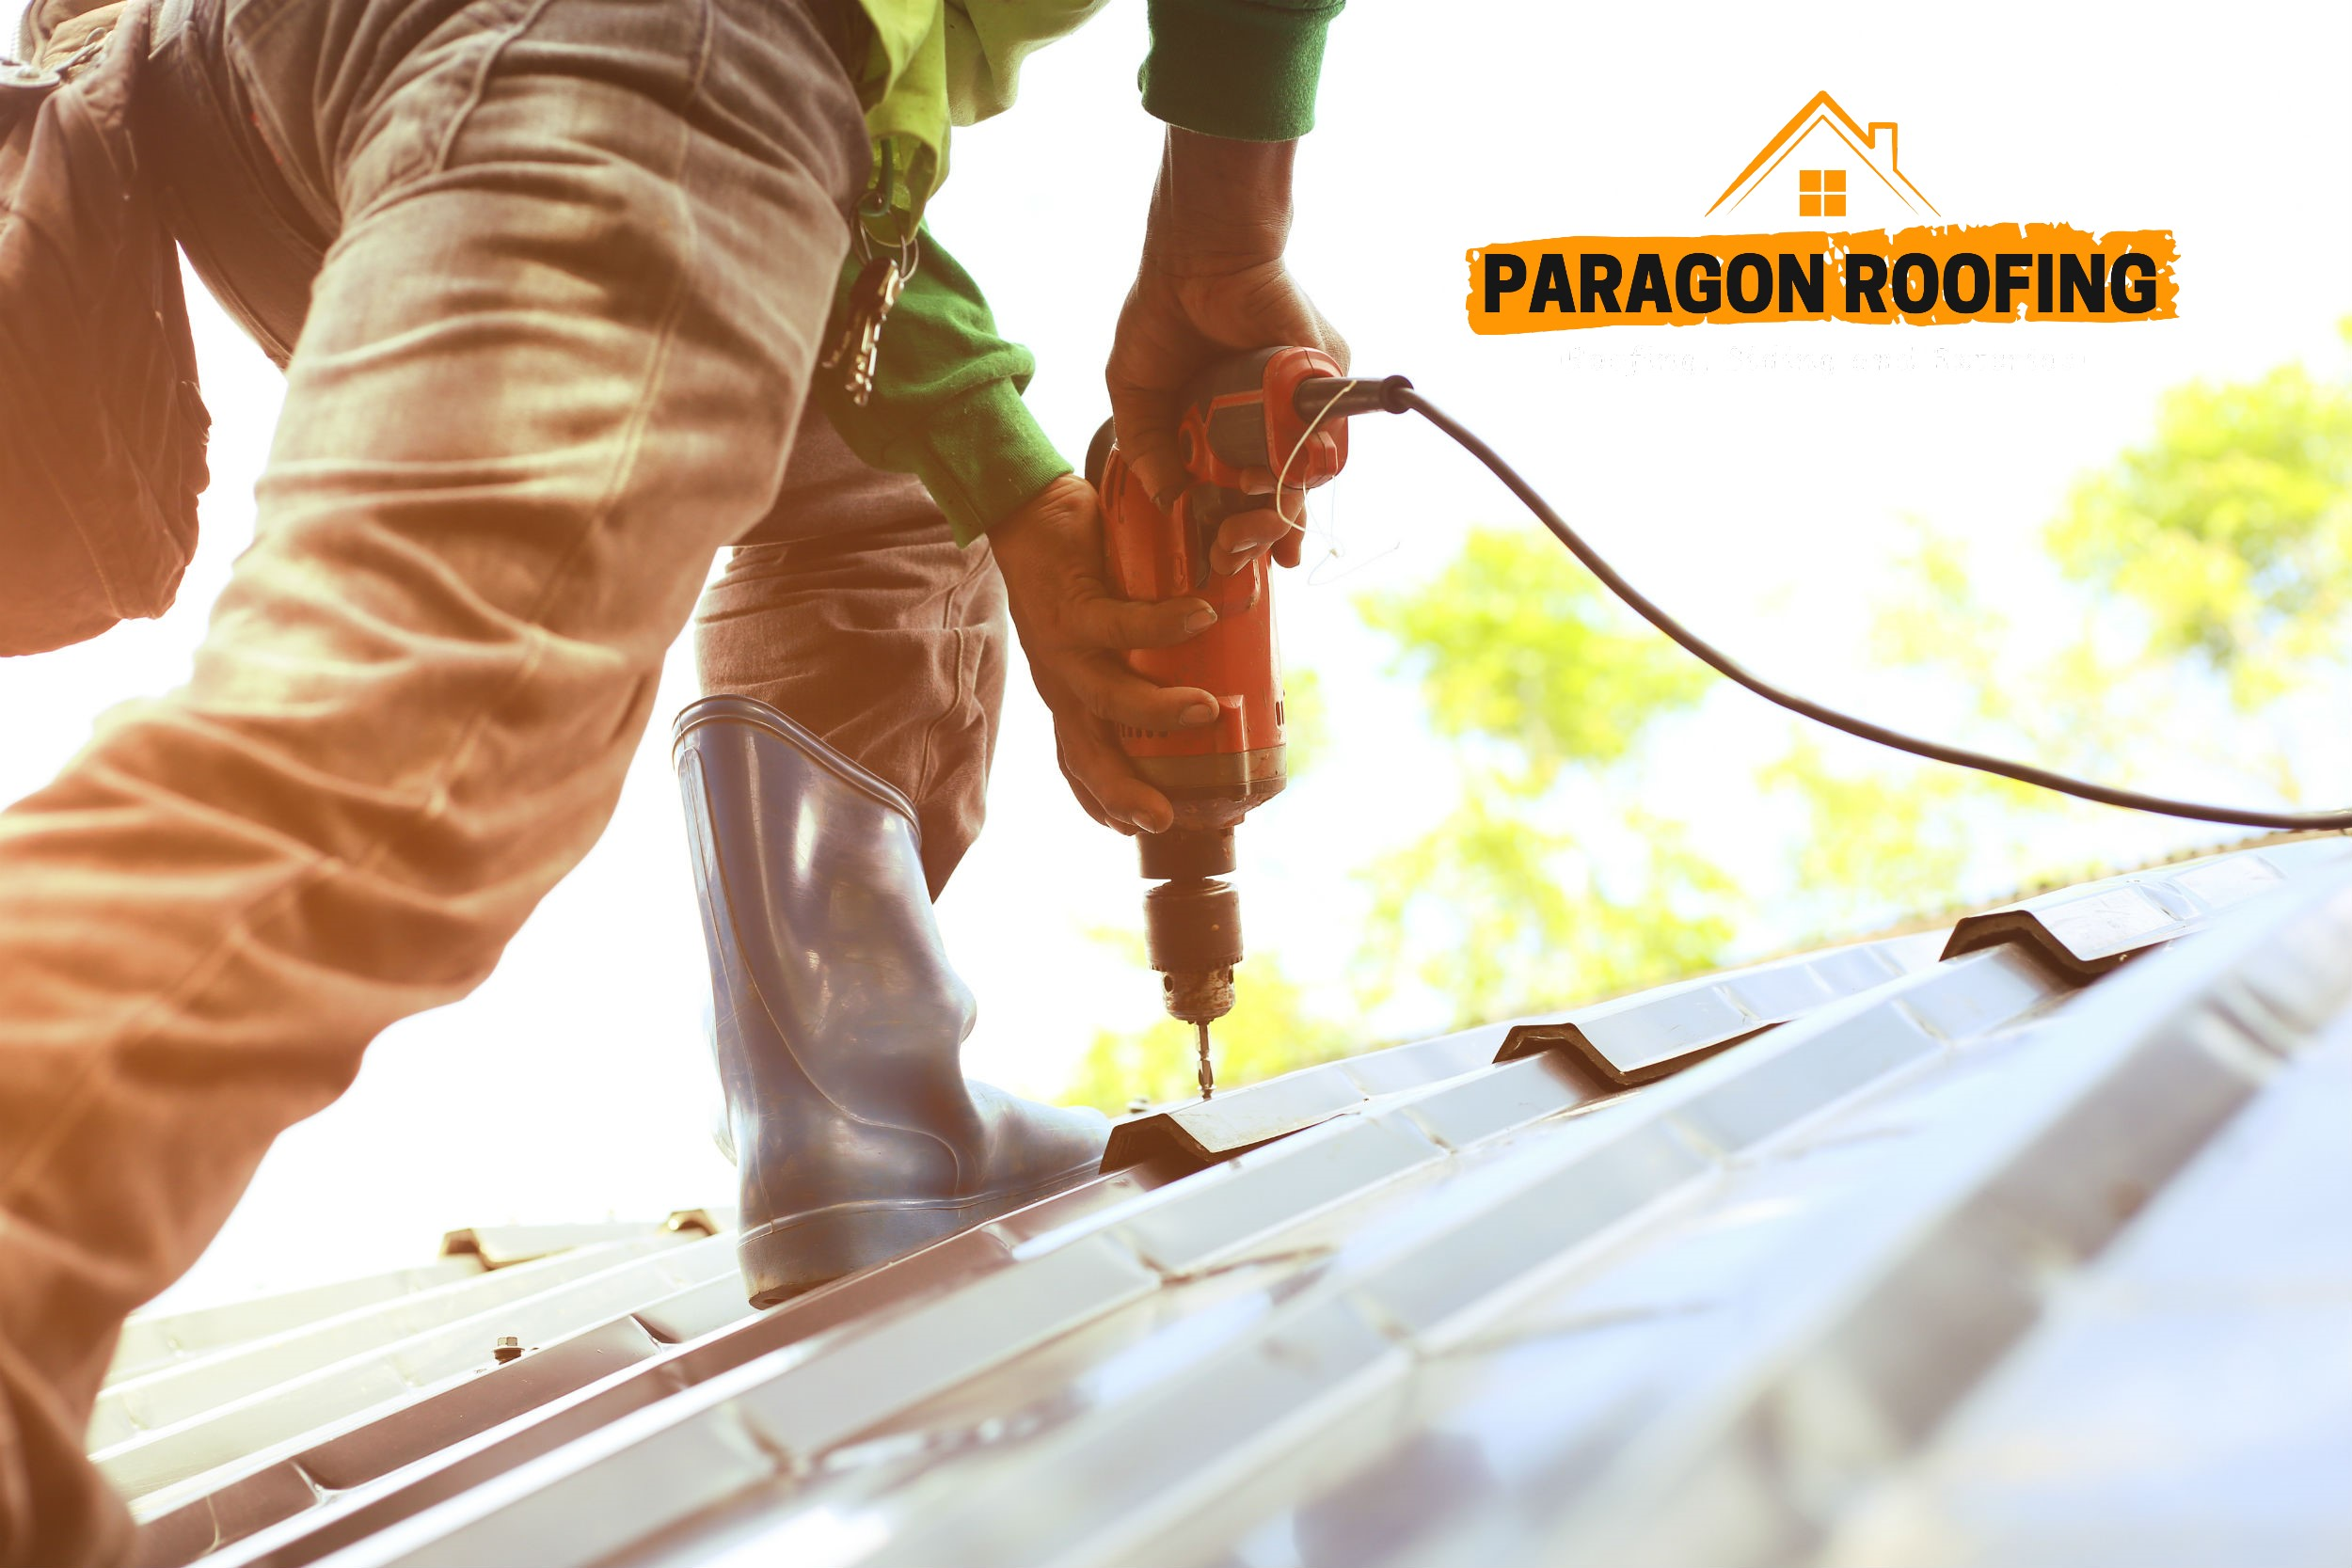 Paragon Roofing - Roof Repair Services